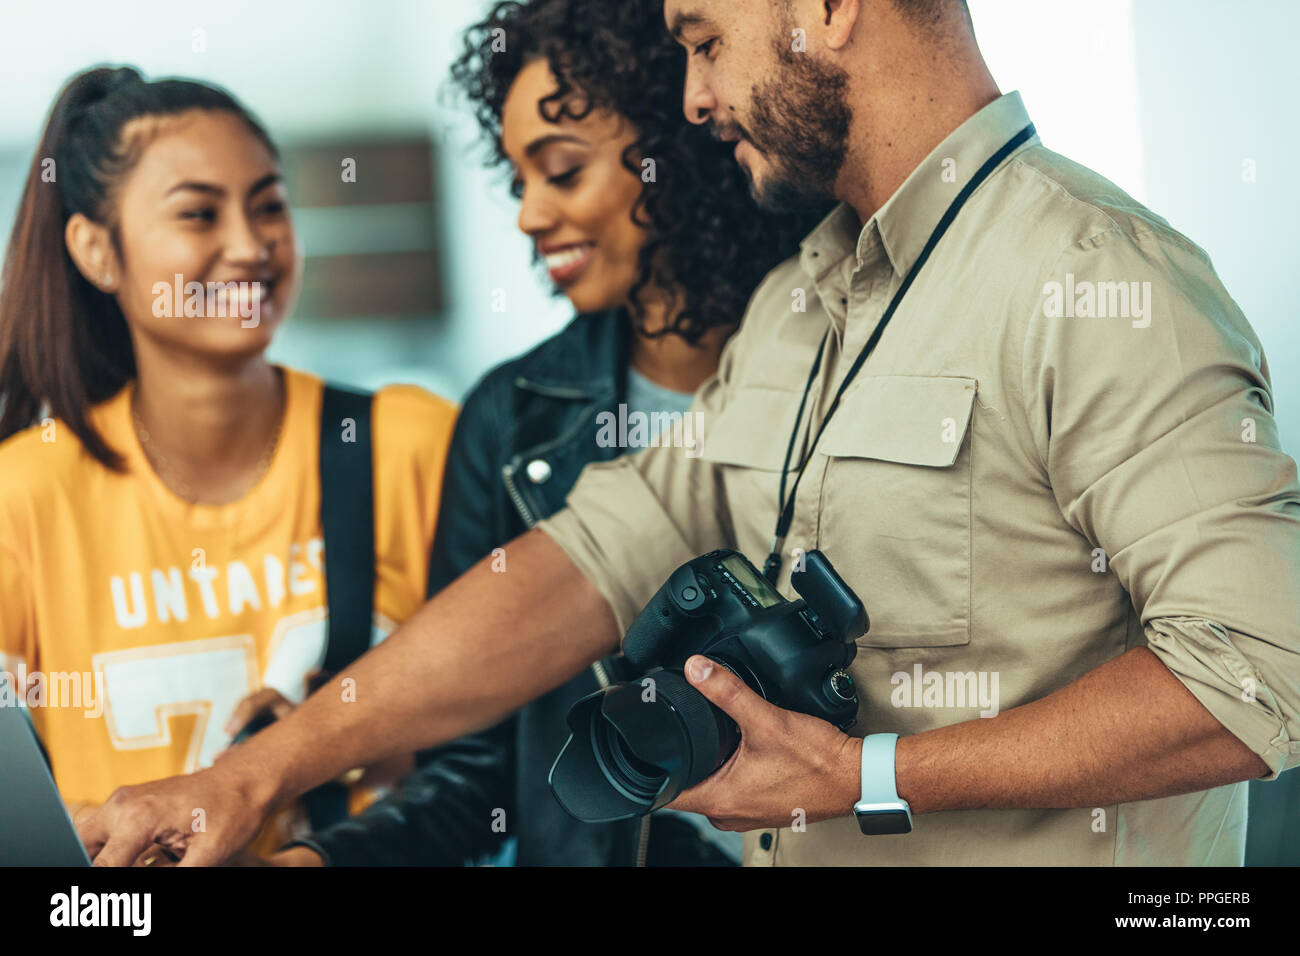 Photographer doing a review of the photo shoot with his team. Models looking at shoot photographs and smiling. - Stock Image